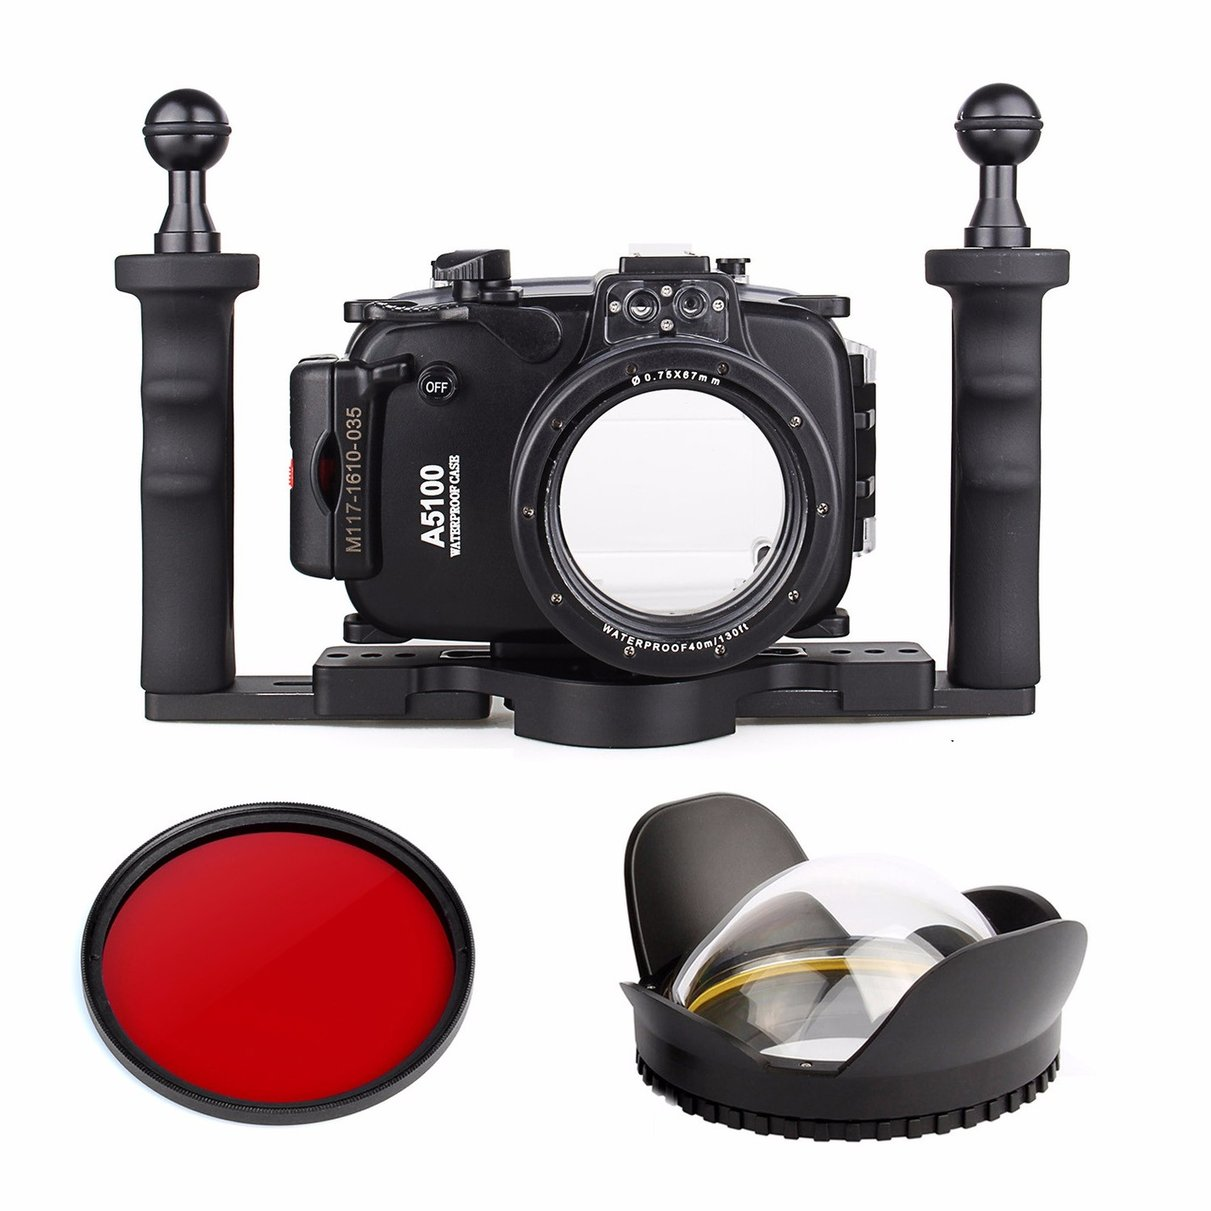 40m Waterproof Underwater Camera Housing Case Bag for Sony A5100 16-50mm + Two Hands Aluminium Tray + Fisheye Lens + Red Filter waterproof underwater housing camera bag case for sony a6000 16 50mm lens